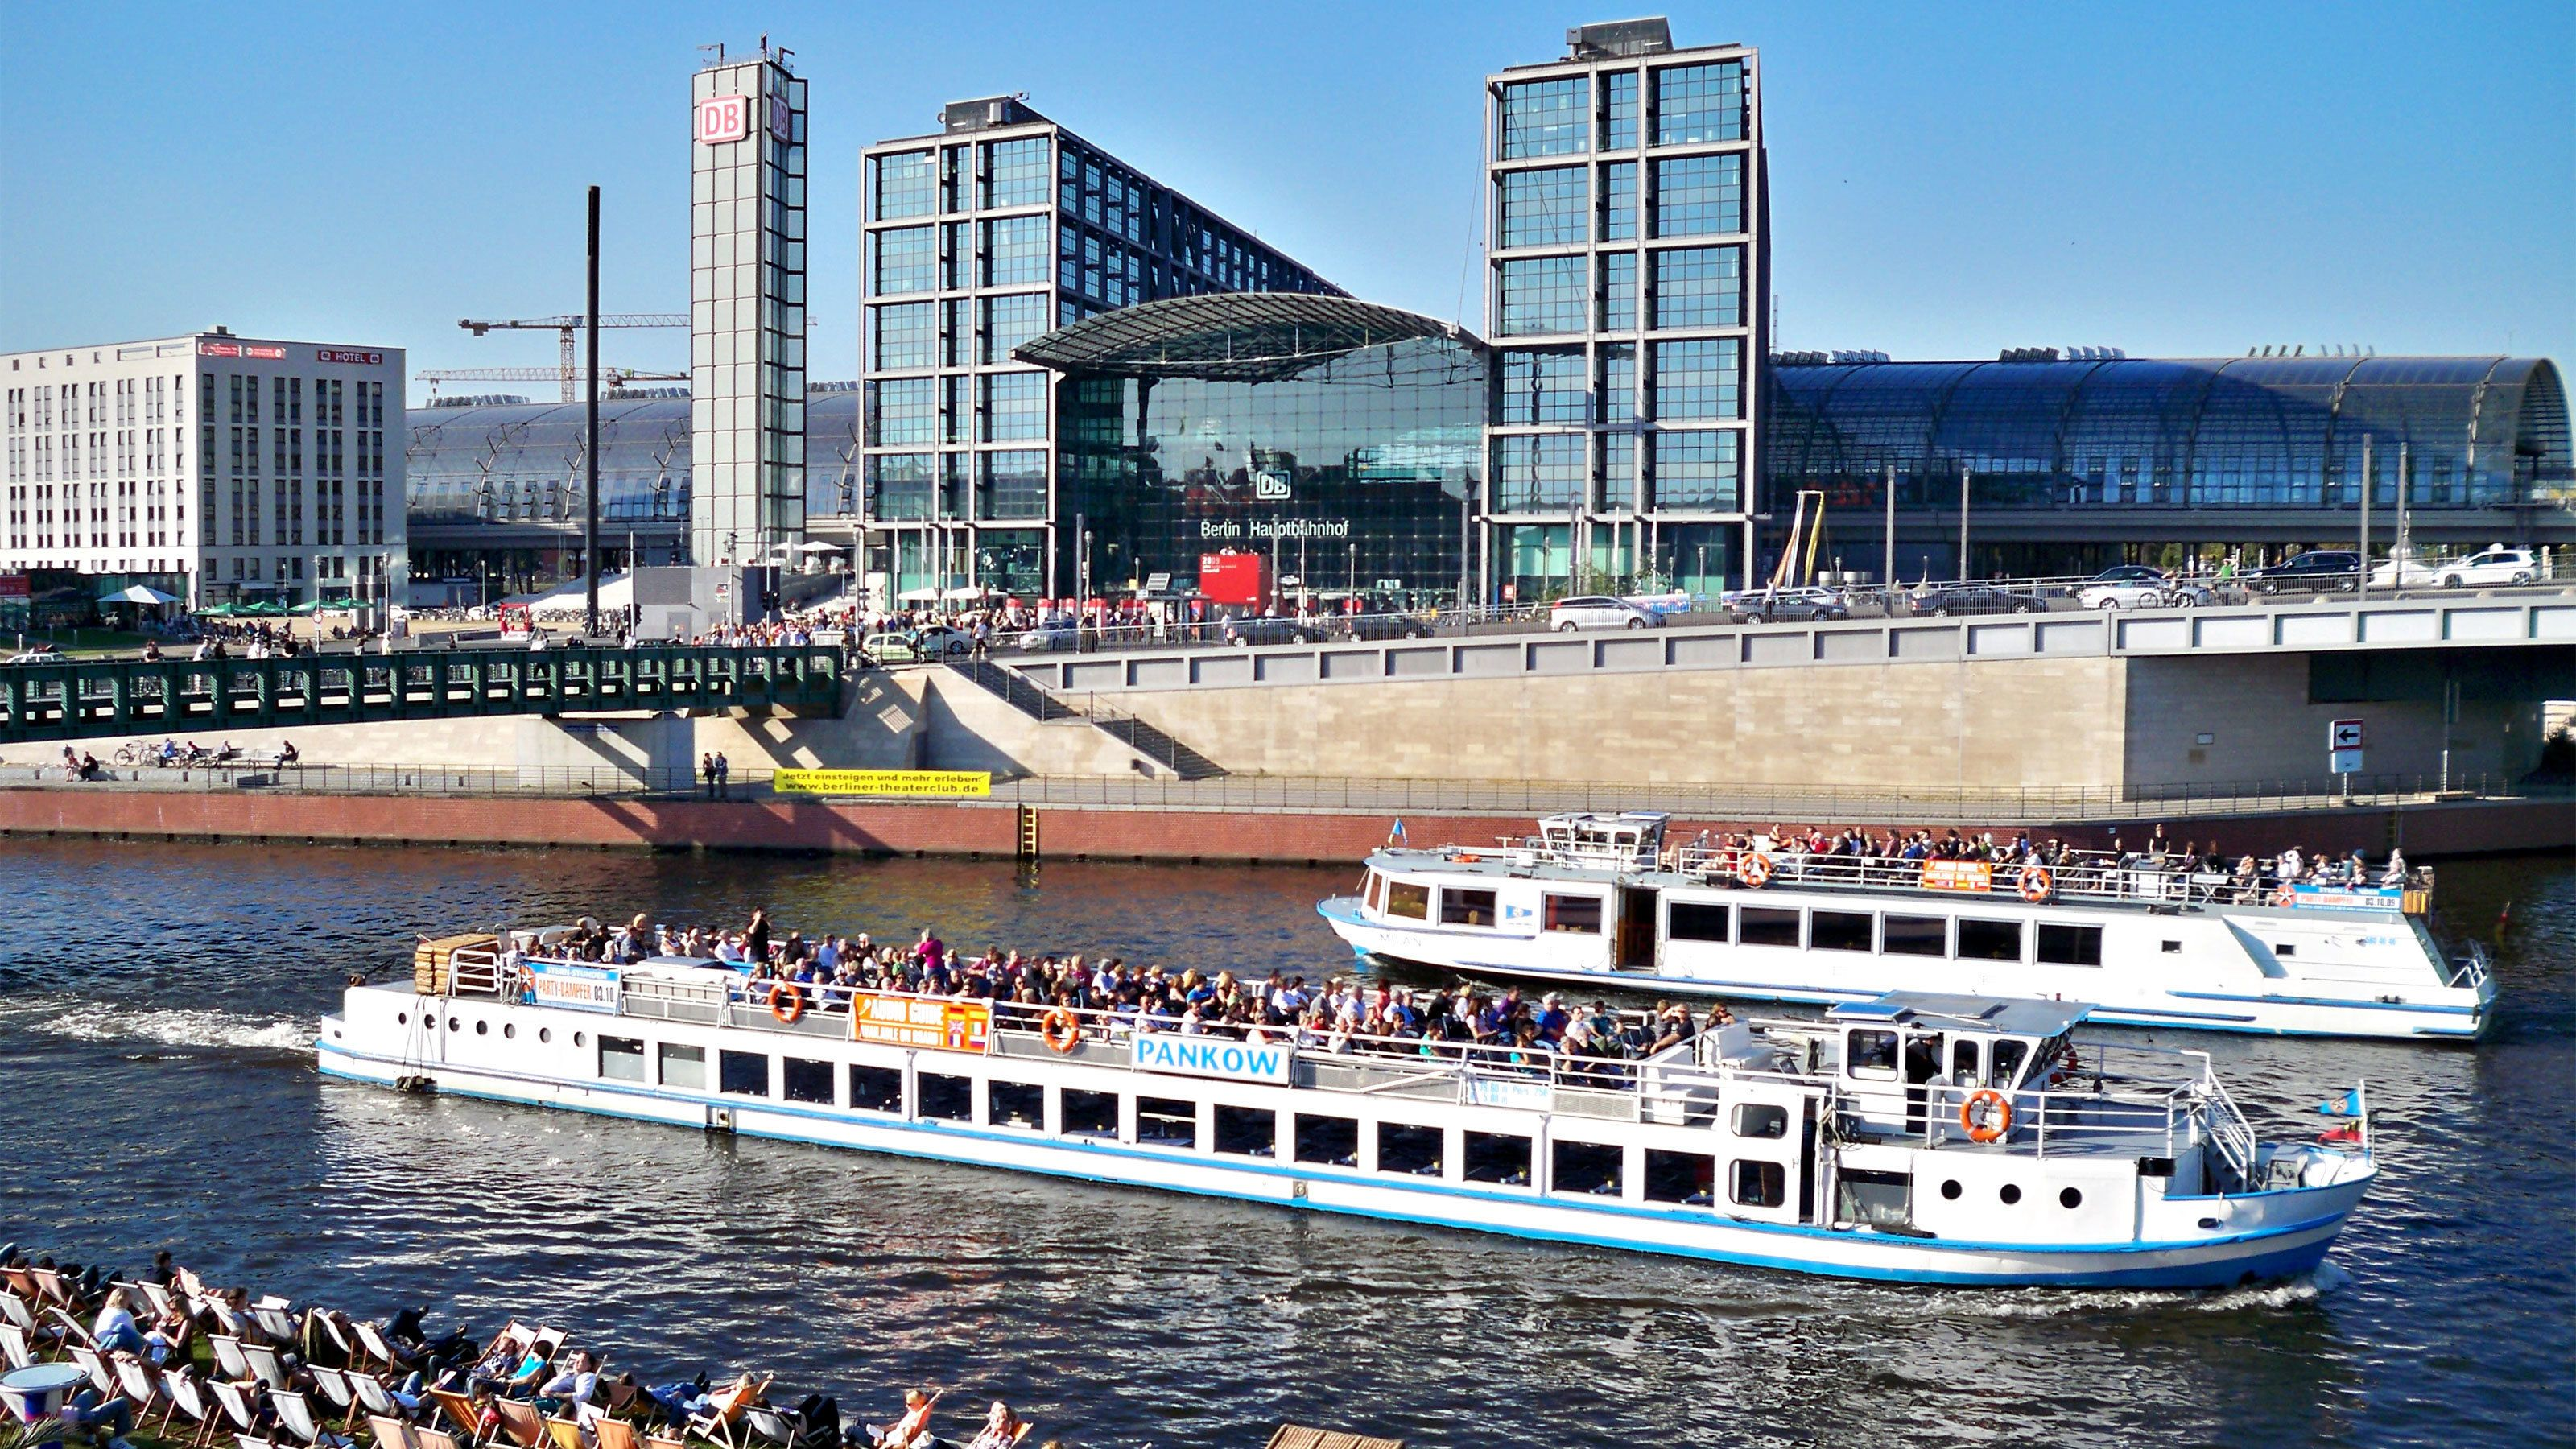 Cruise boats sailing down the Spree river in Berlin